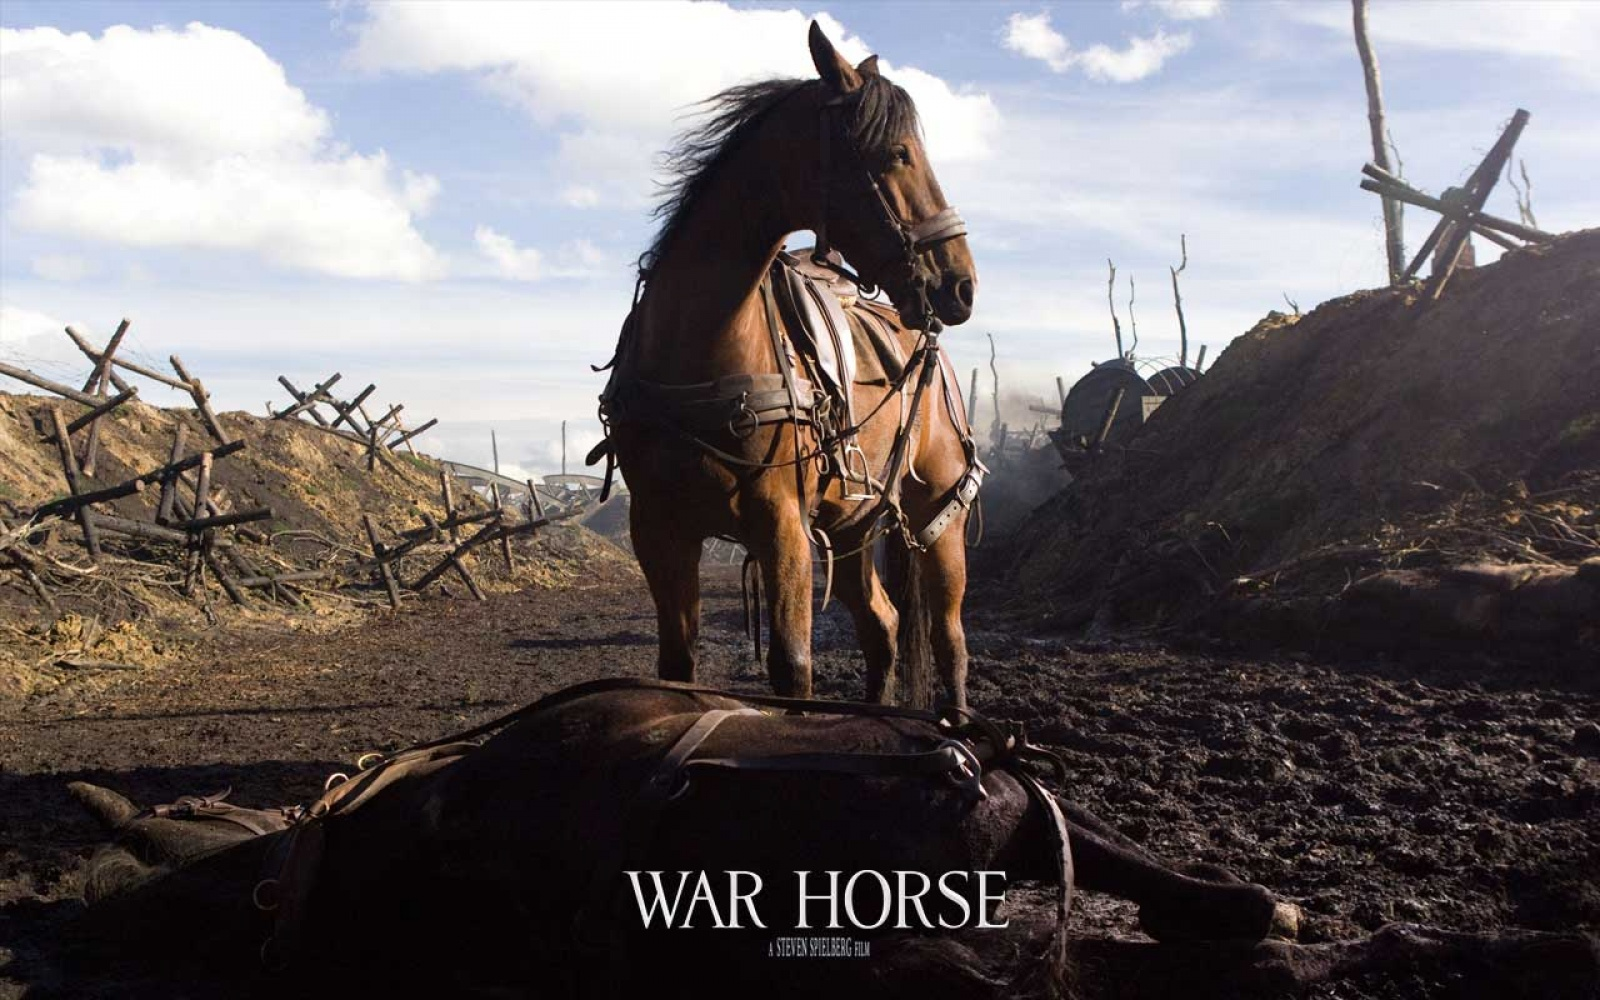 ws War Horse Movie 1600x1200 DouBleBs 2012 Oscar Picks   Art Direction